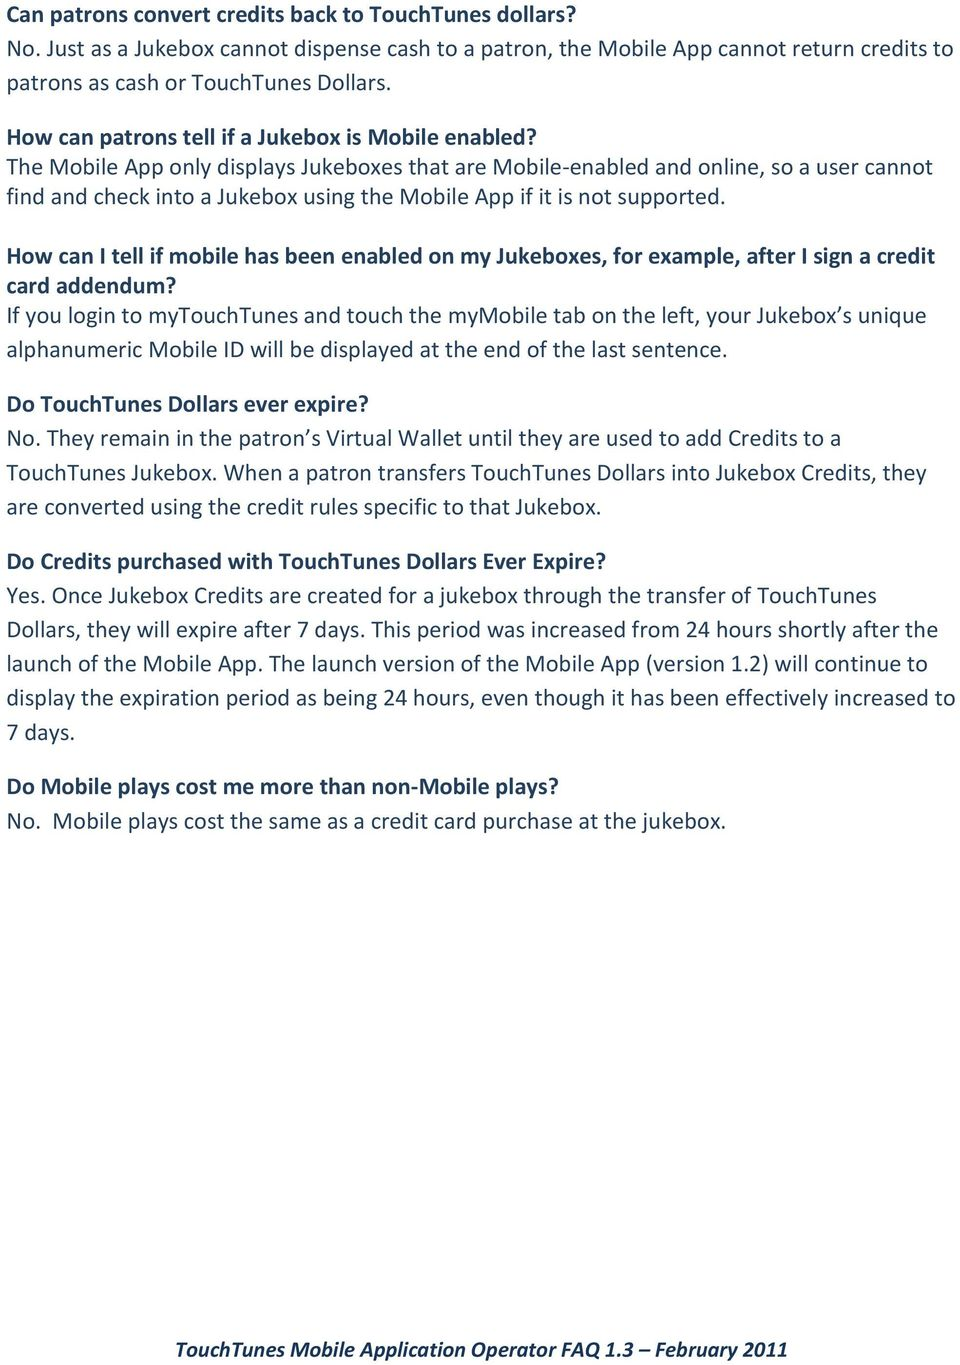 TouchTunes Mobile Application Operator FAQ Version PDF